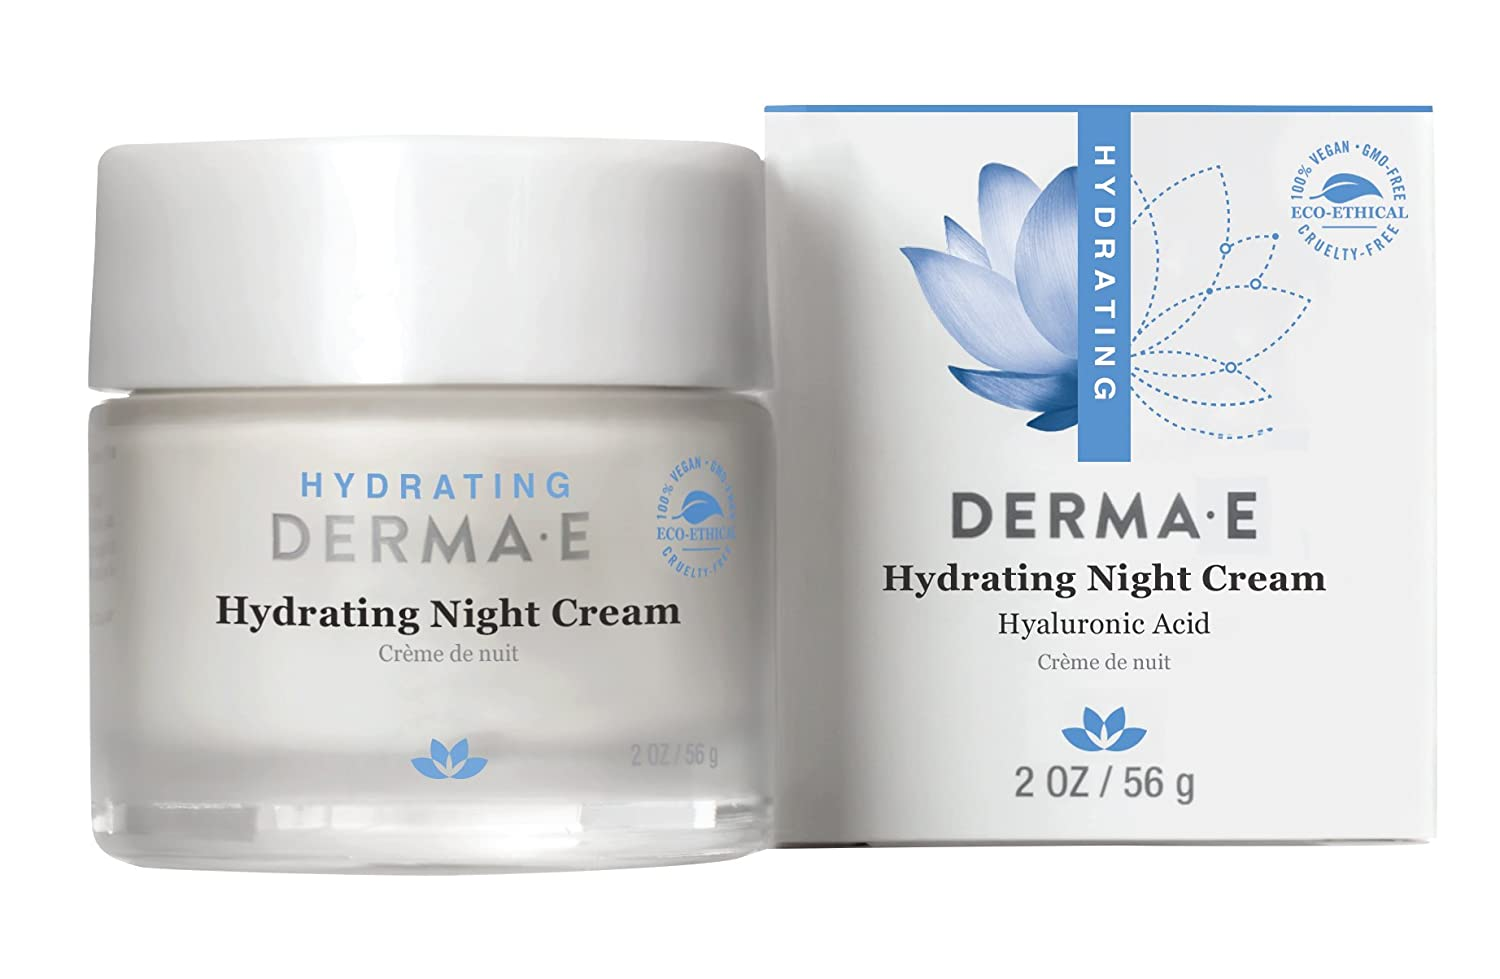 DERMA E Hydrating Night Cream with Hyaluronic Acid 2oz 0466